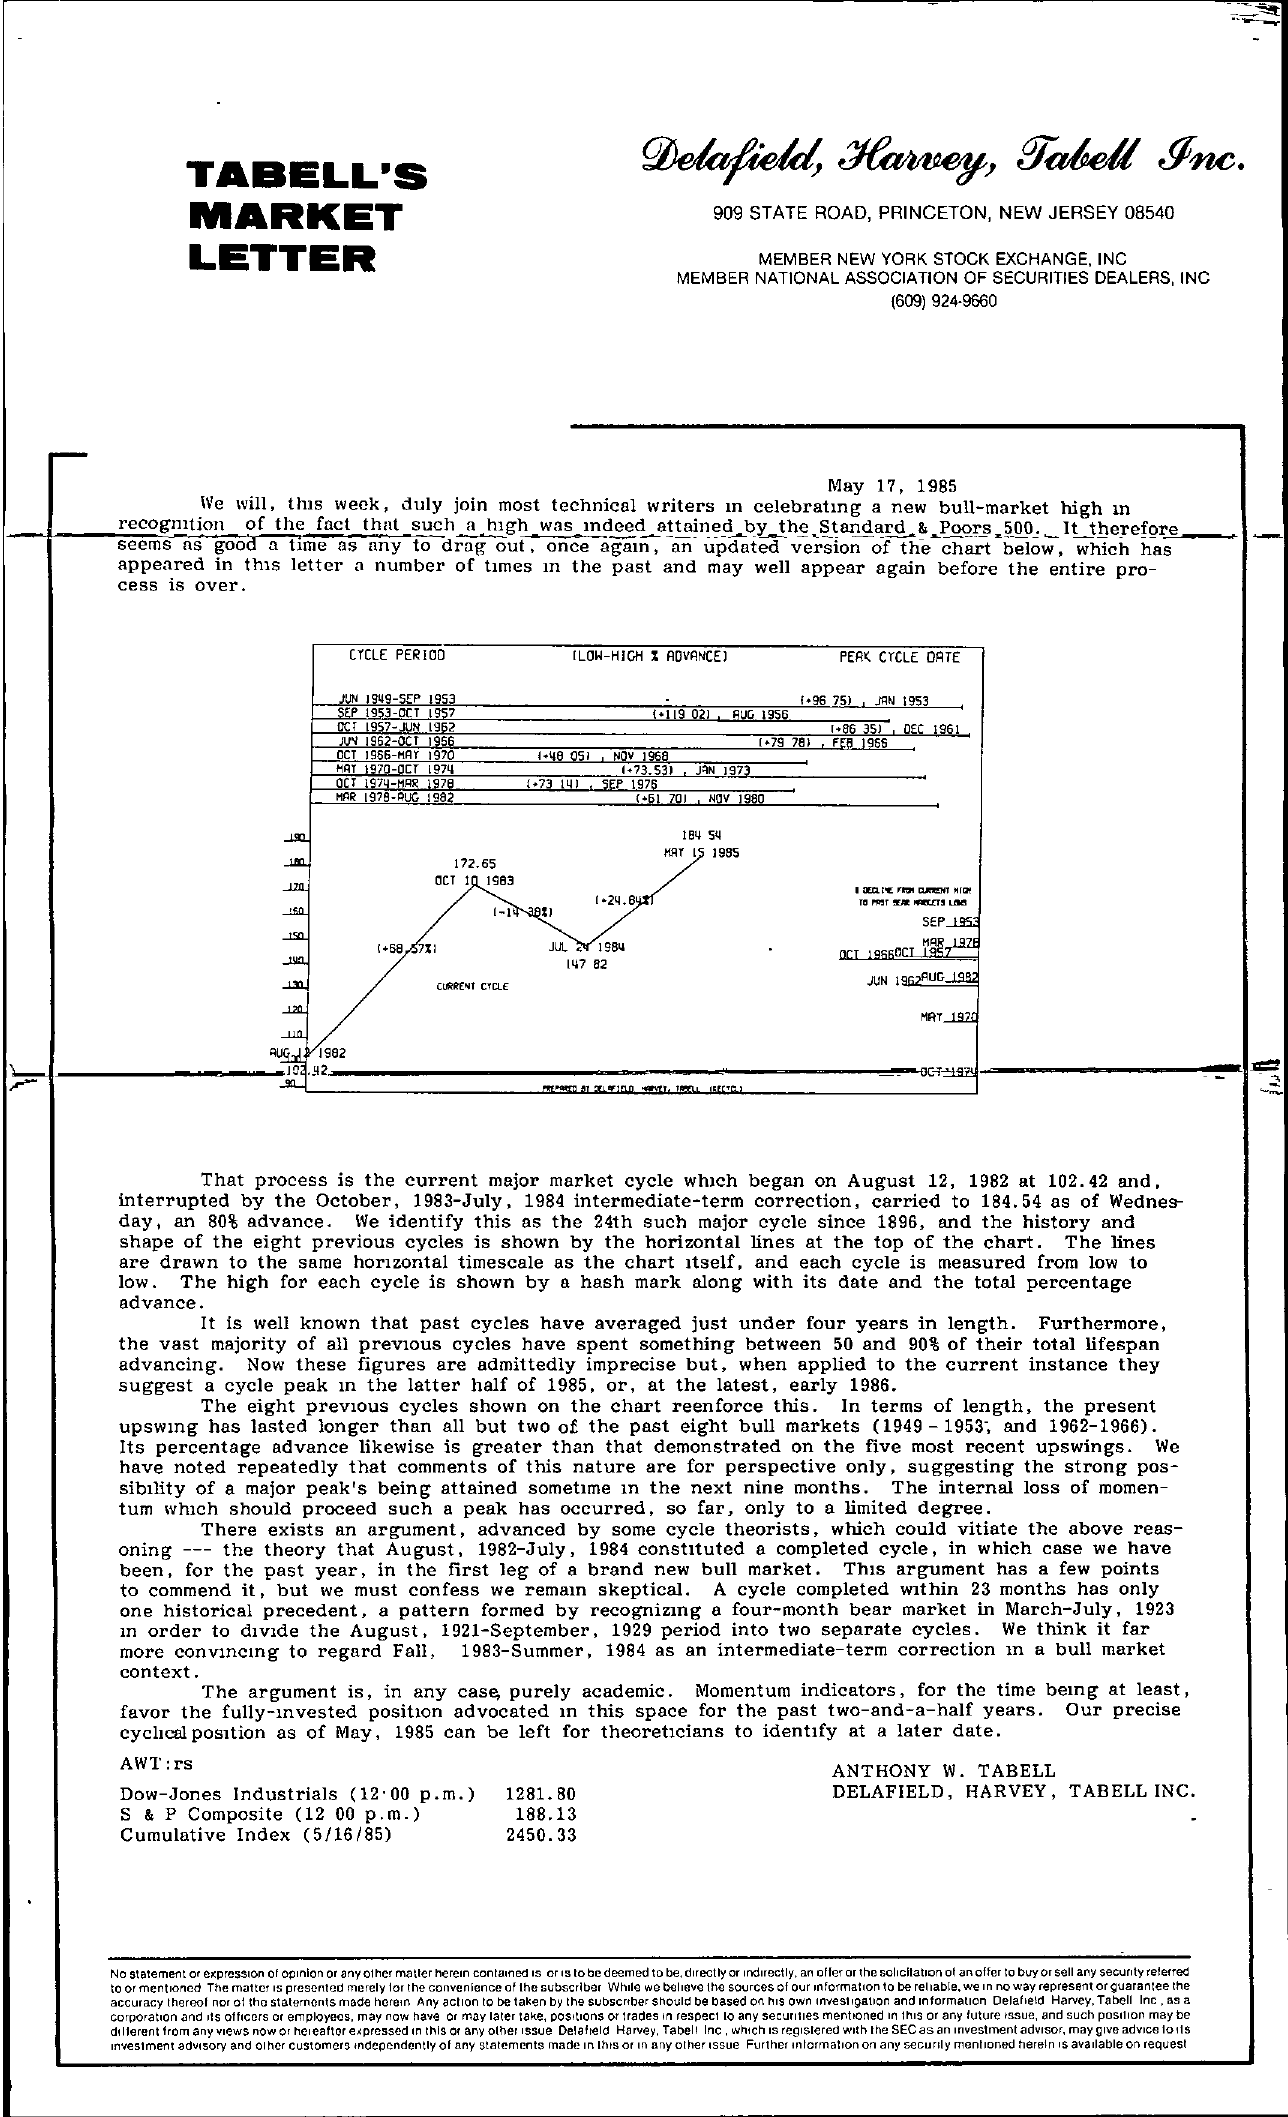 Tabell's Market Letter - May 17, 1985